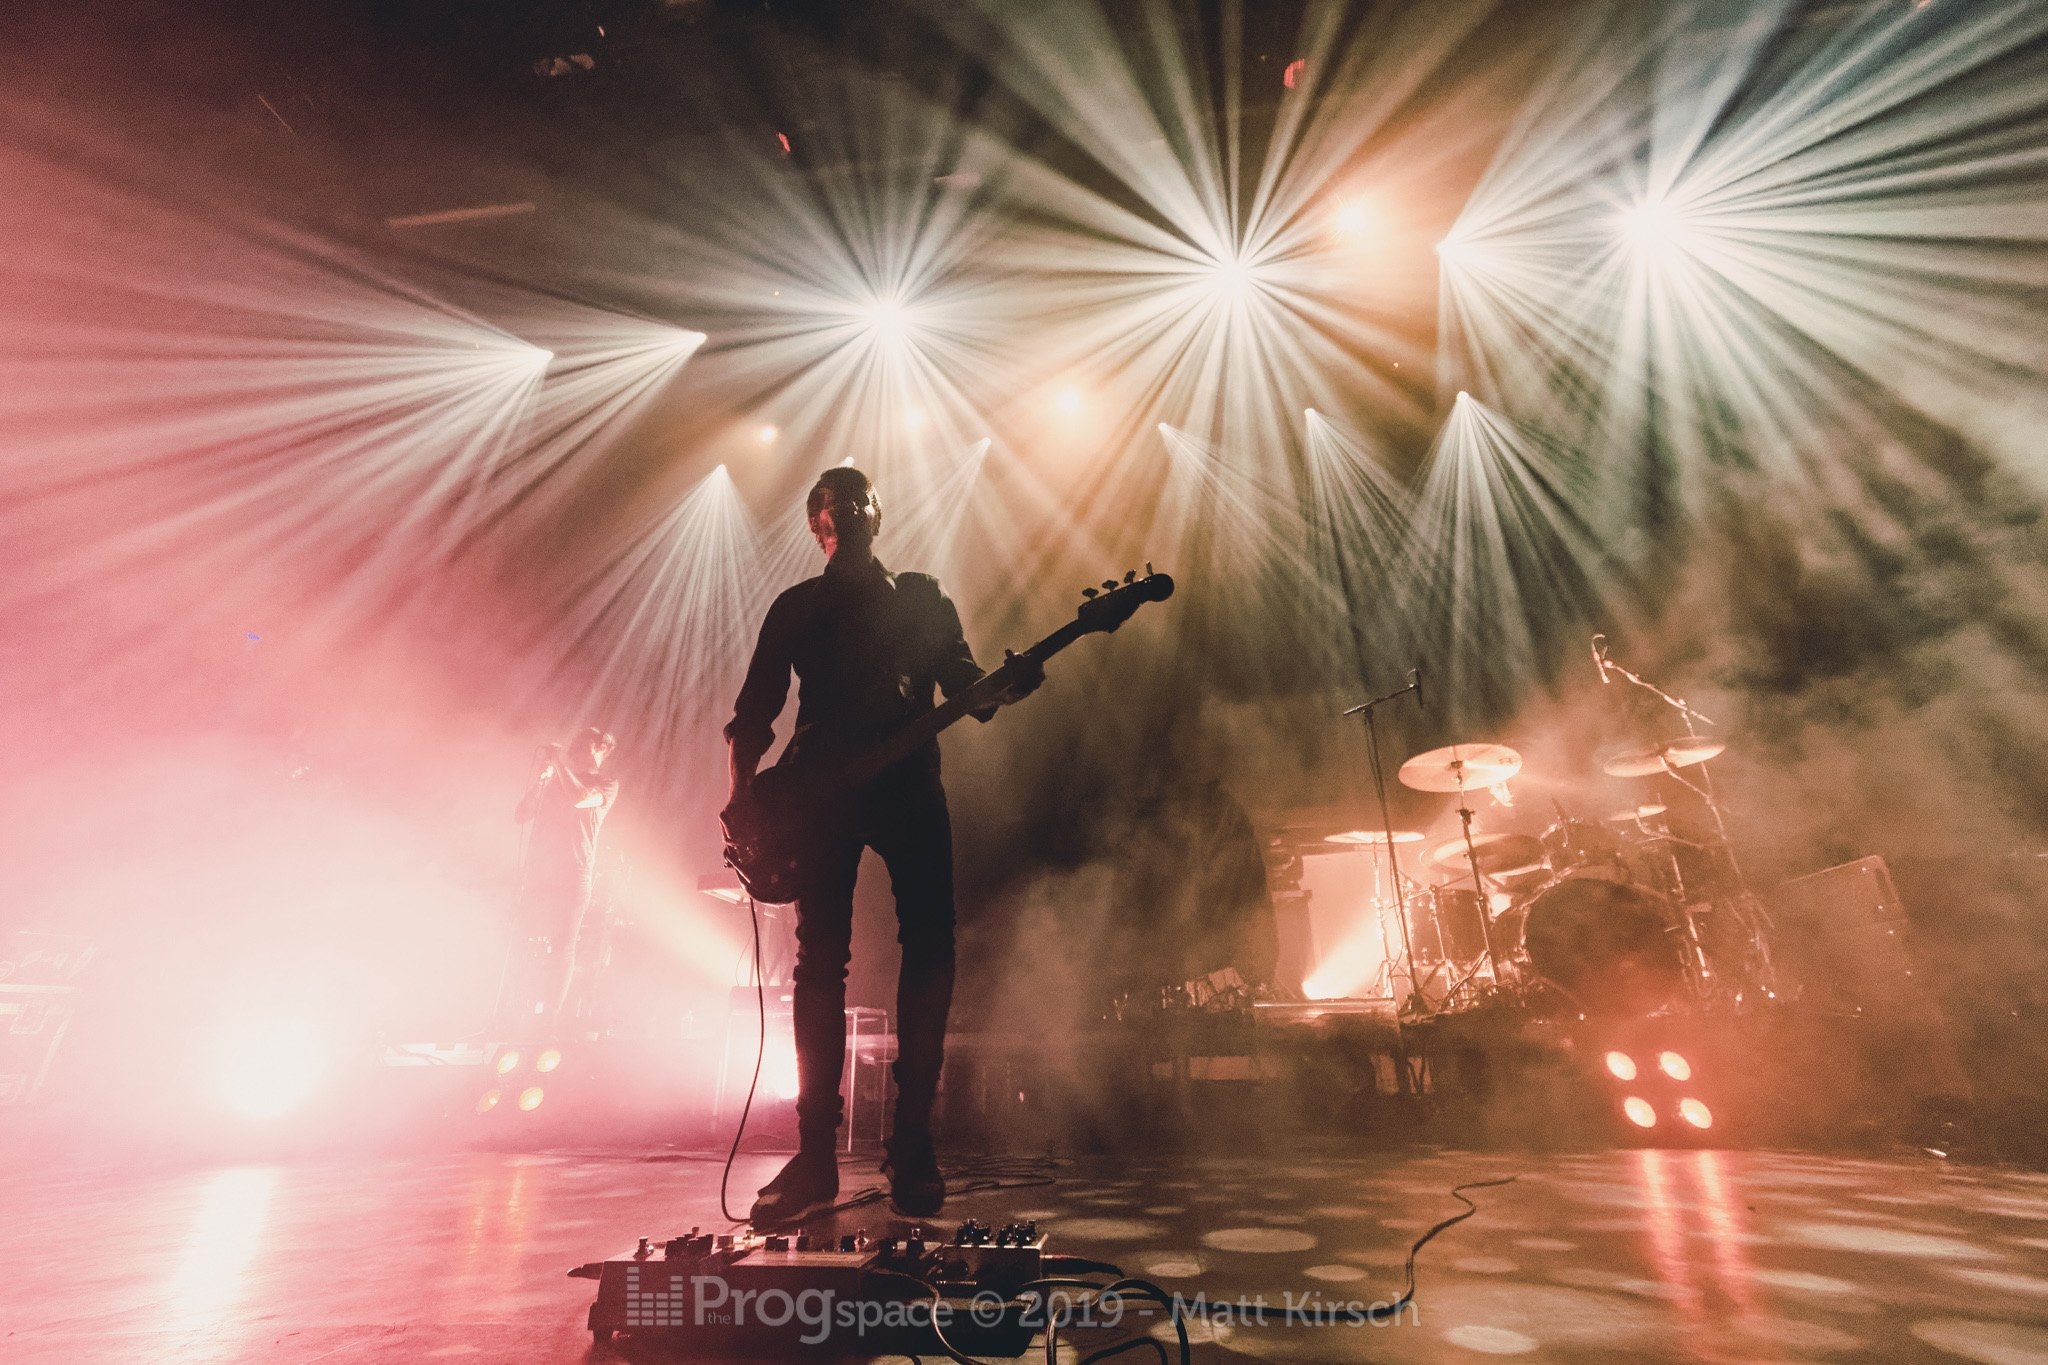 The Ocean at Hedon Zwolle, 2 November 2019